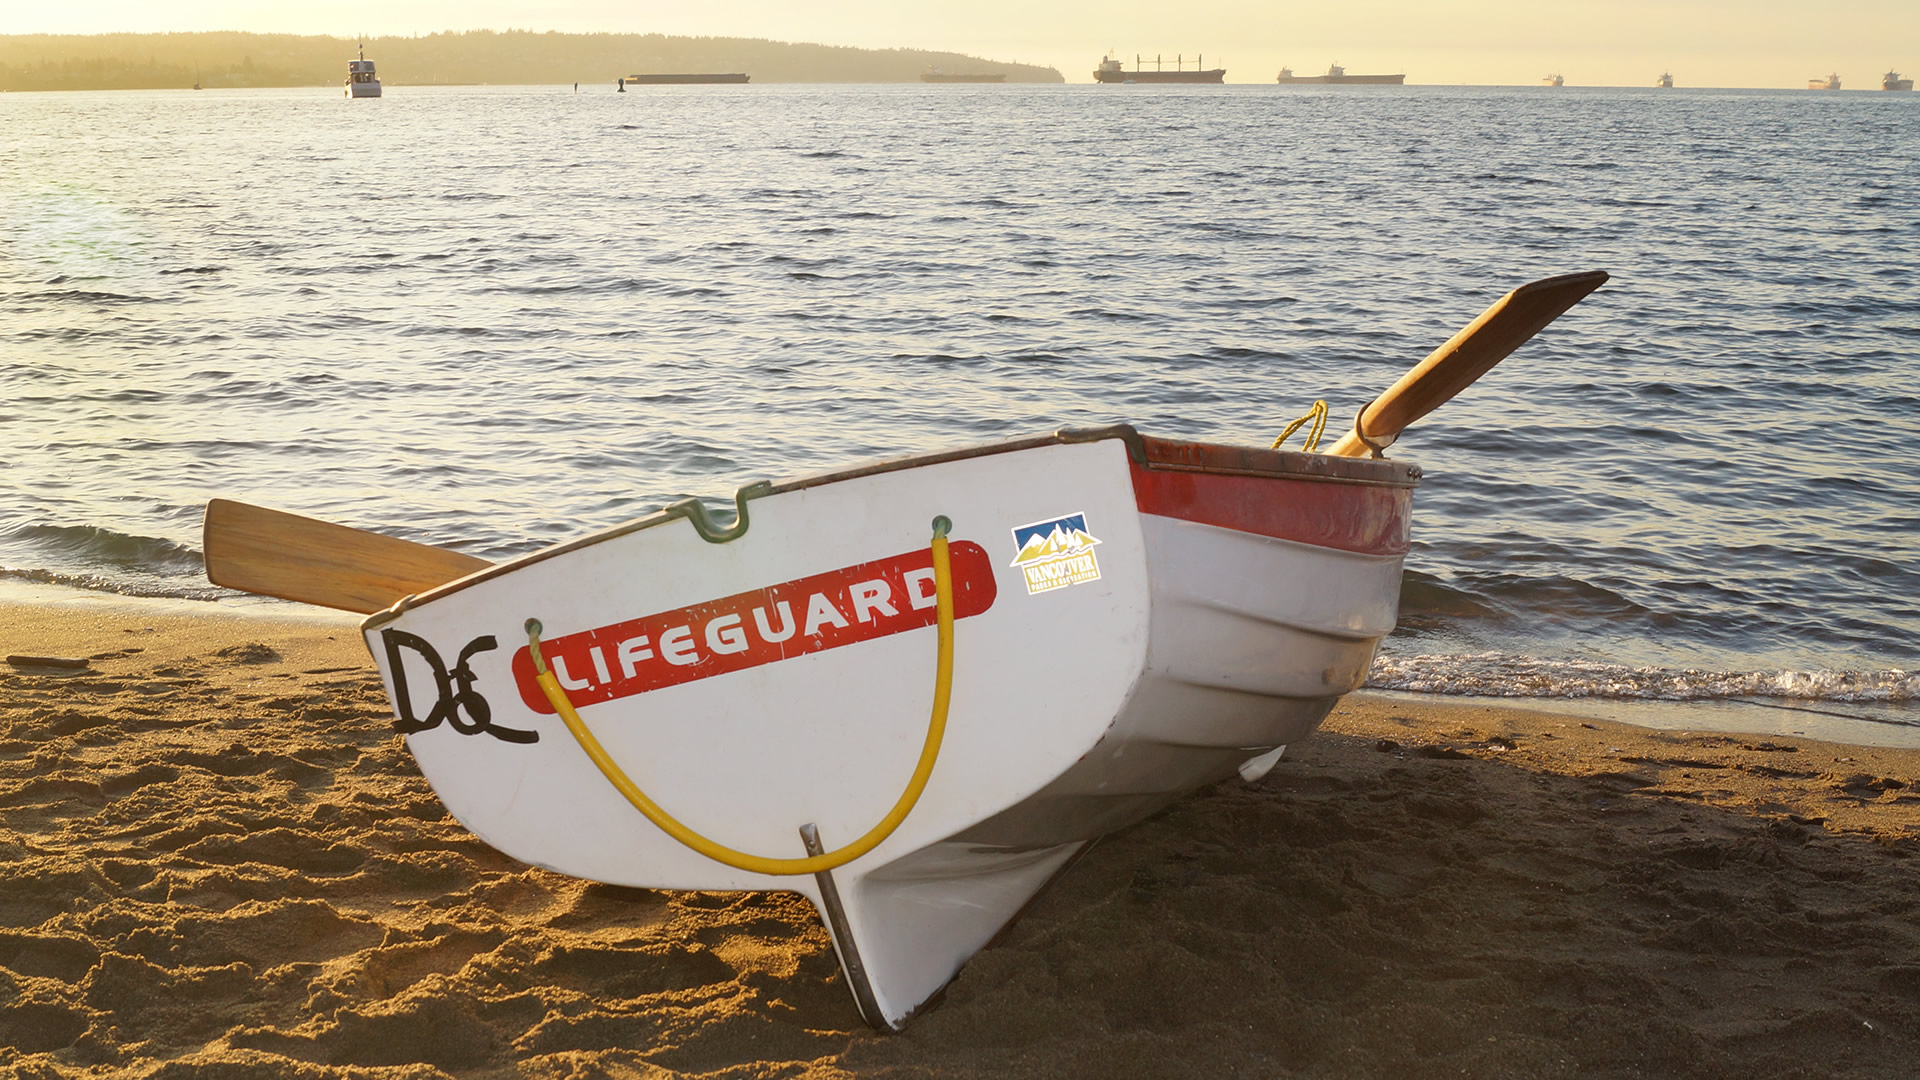 Westcoast-Lifeguard-Rowboat-Whitehall-Rowing-and-Sail-7a